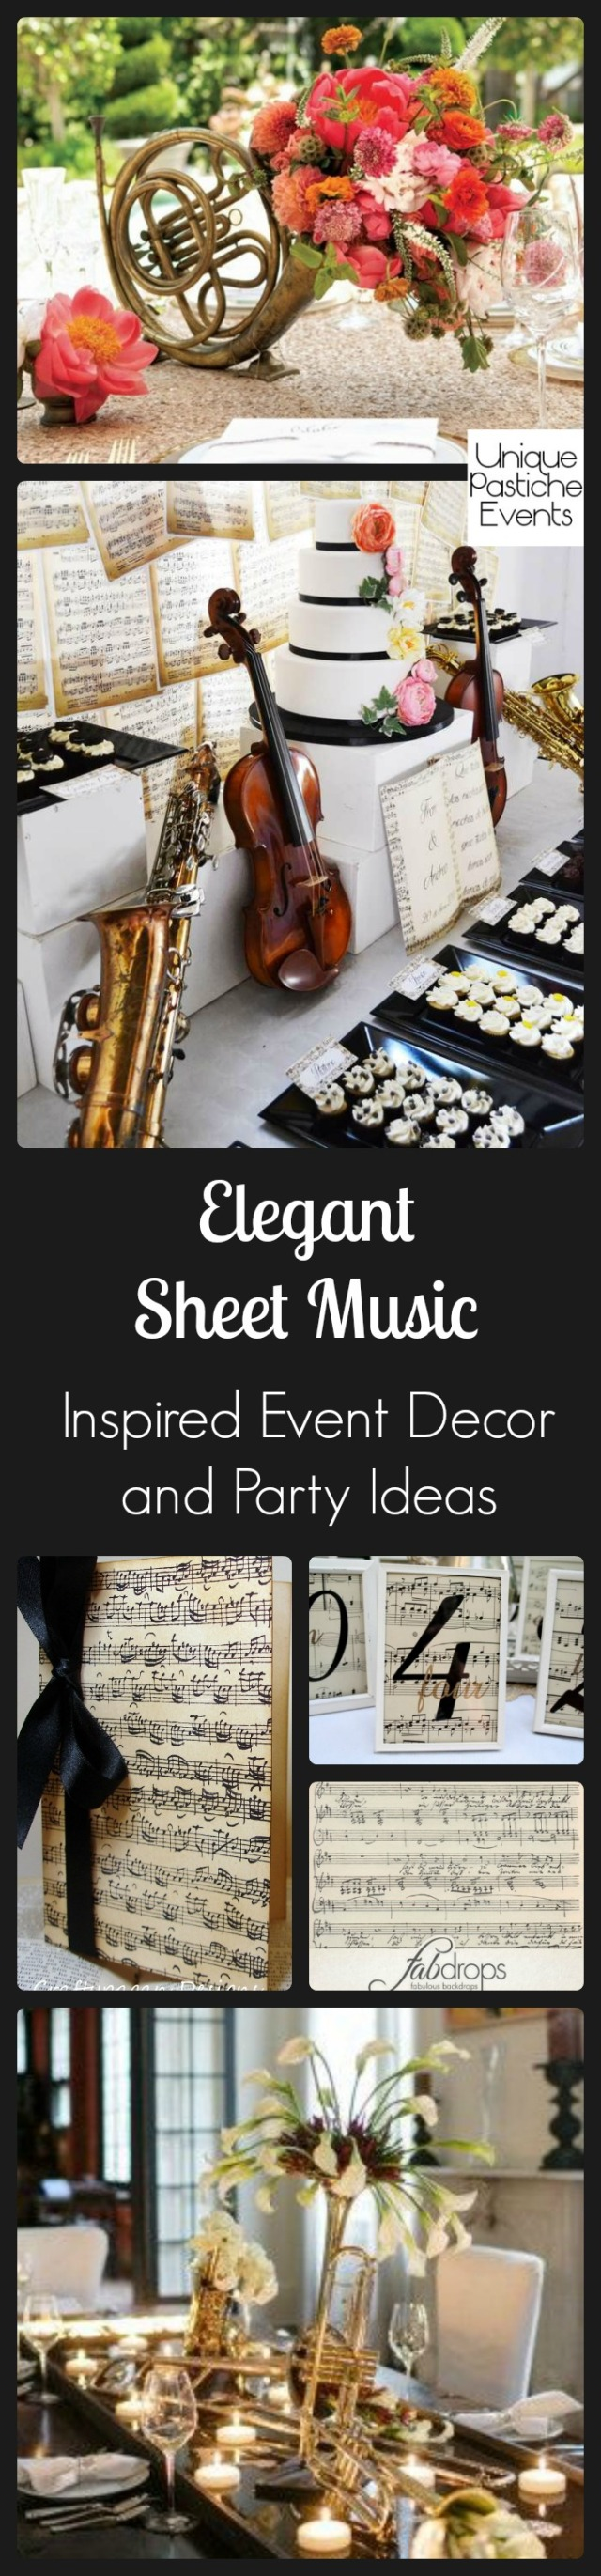 Elegant Sheet Music Inspired Event Decor and Party Ideas